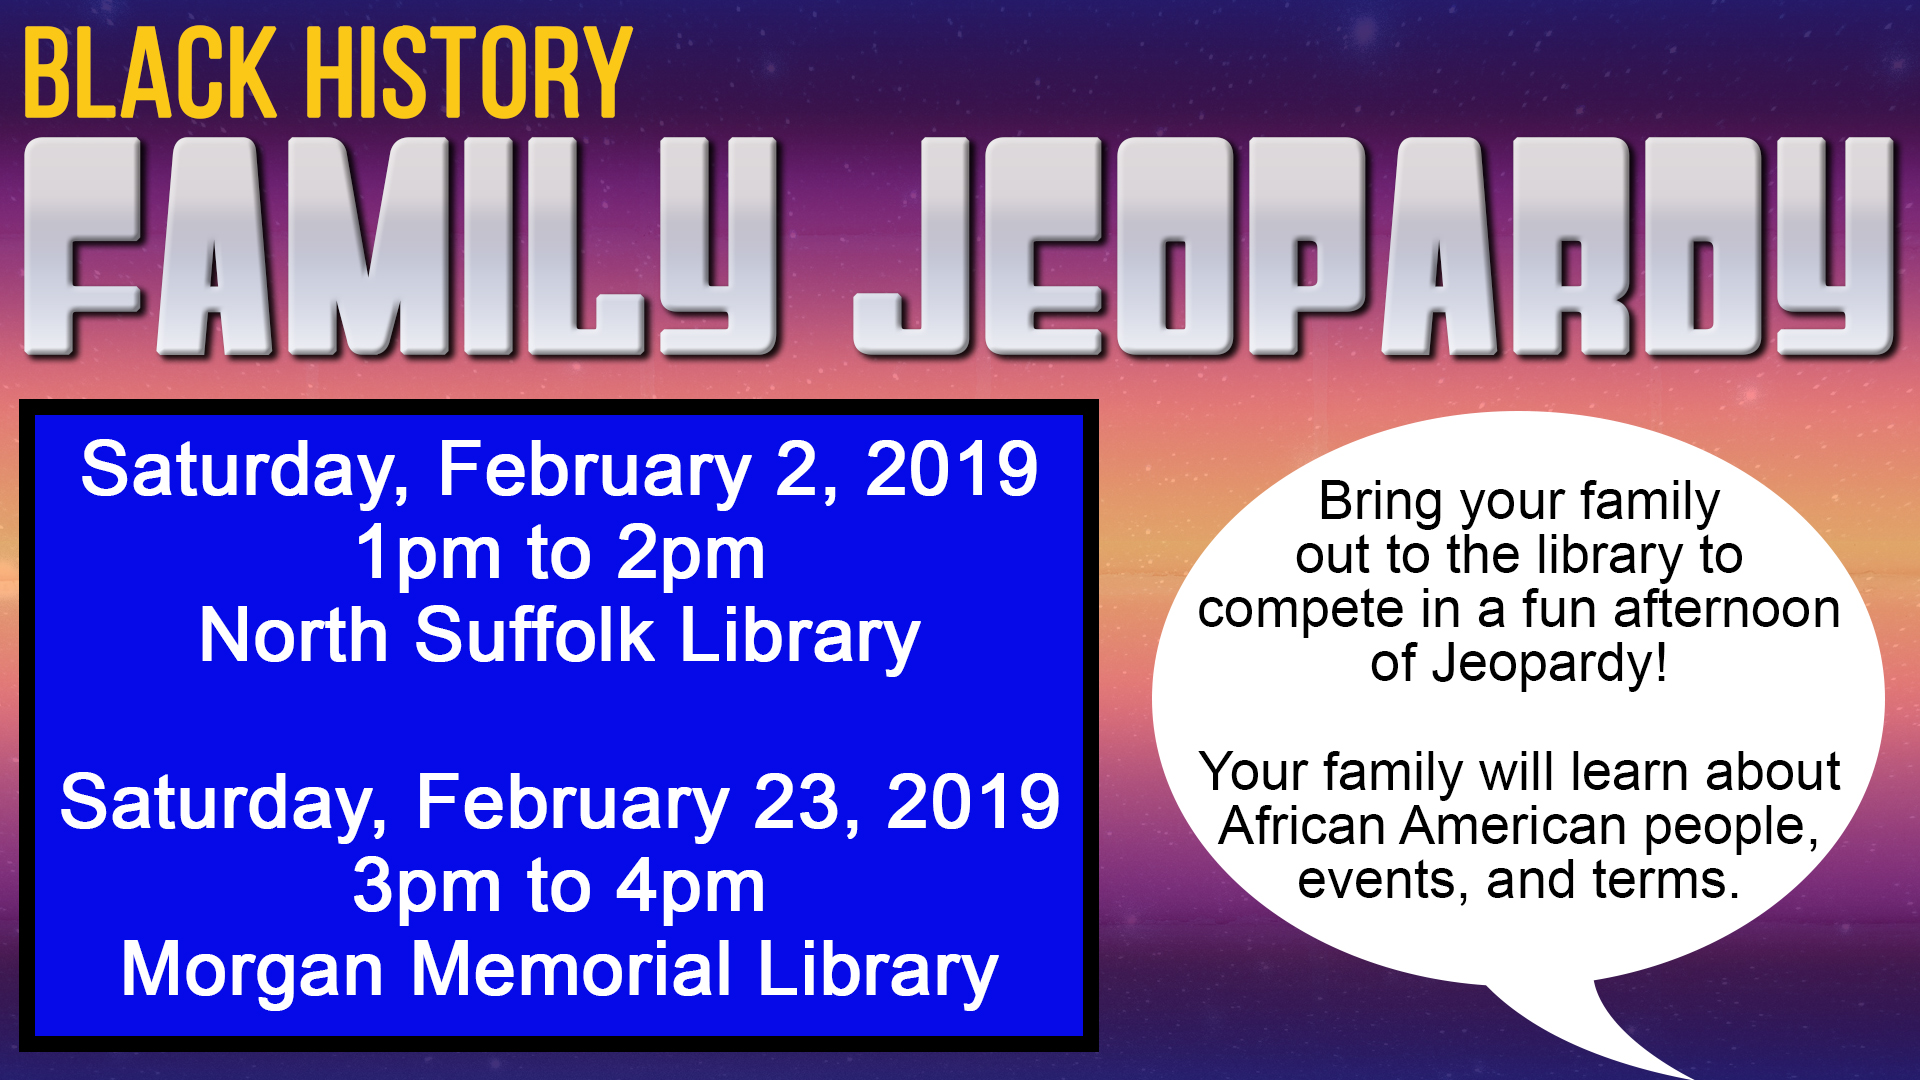 Black History Family Jeopardy